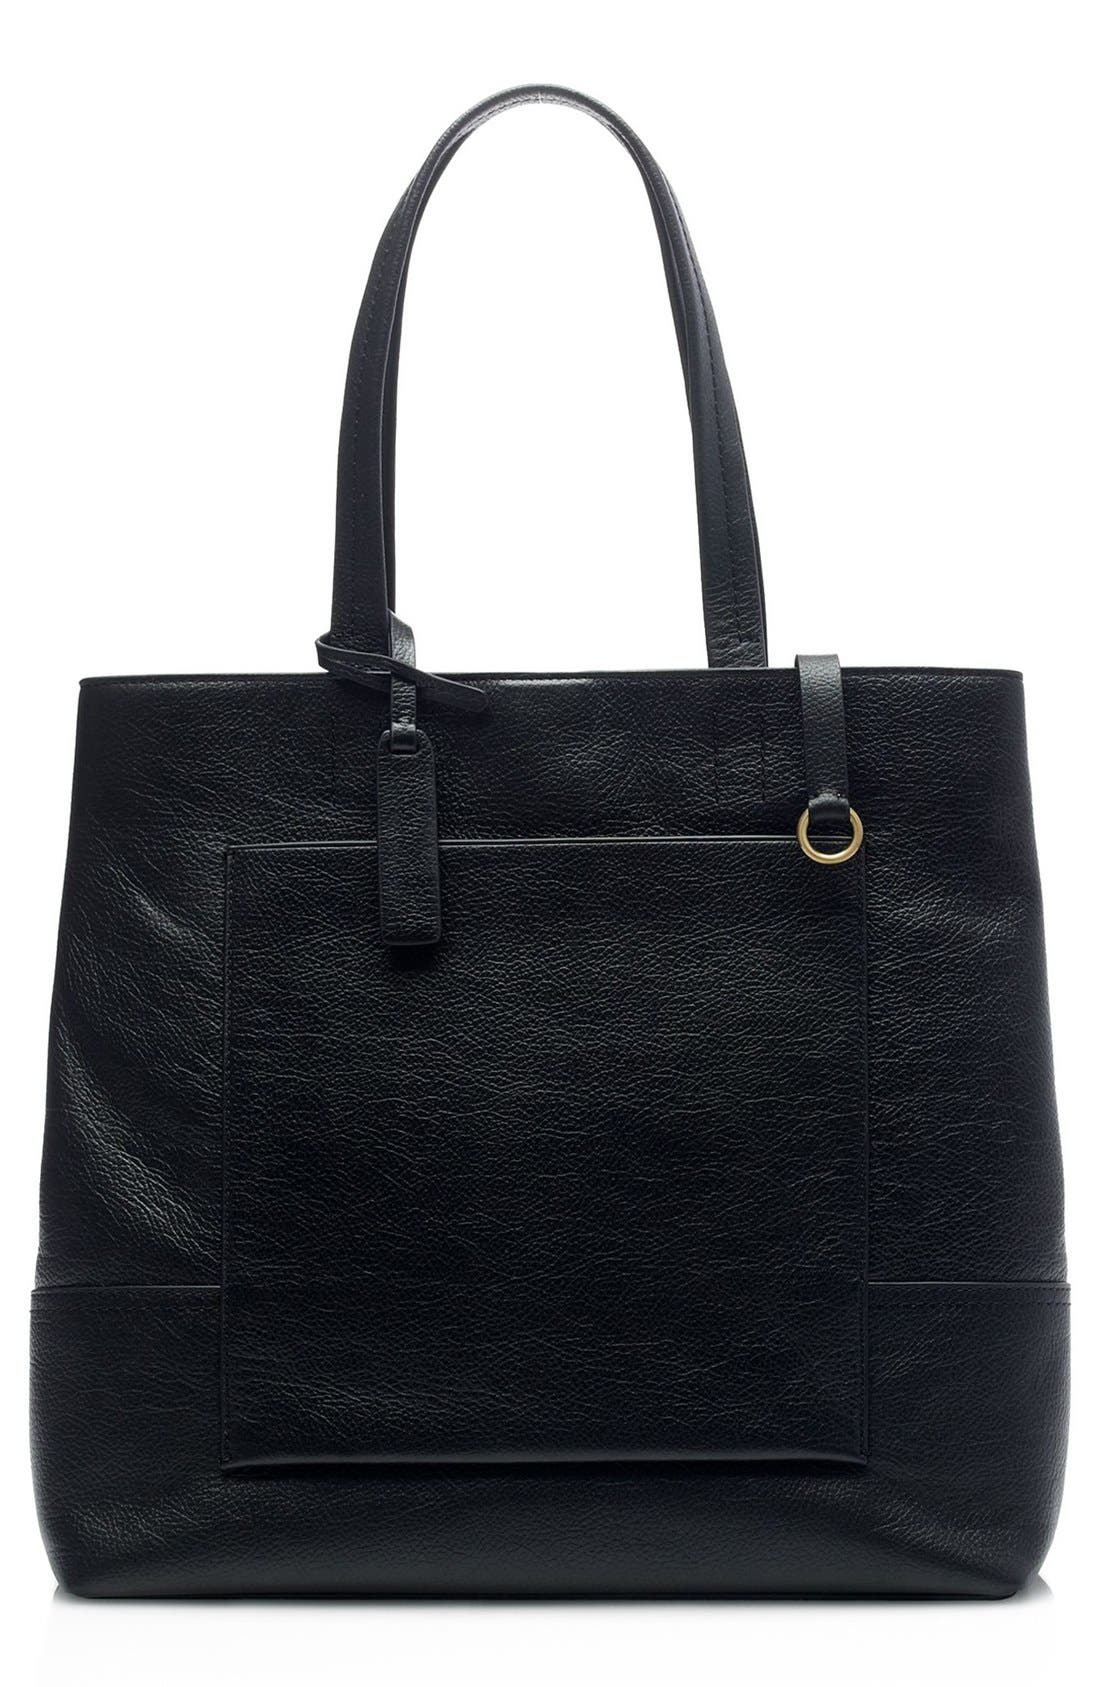 Alternate Image 1 Selected - J.Crew All-Day Tote